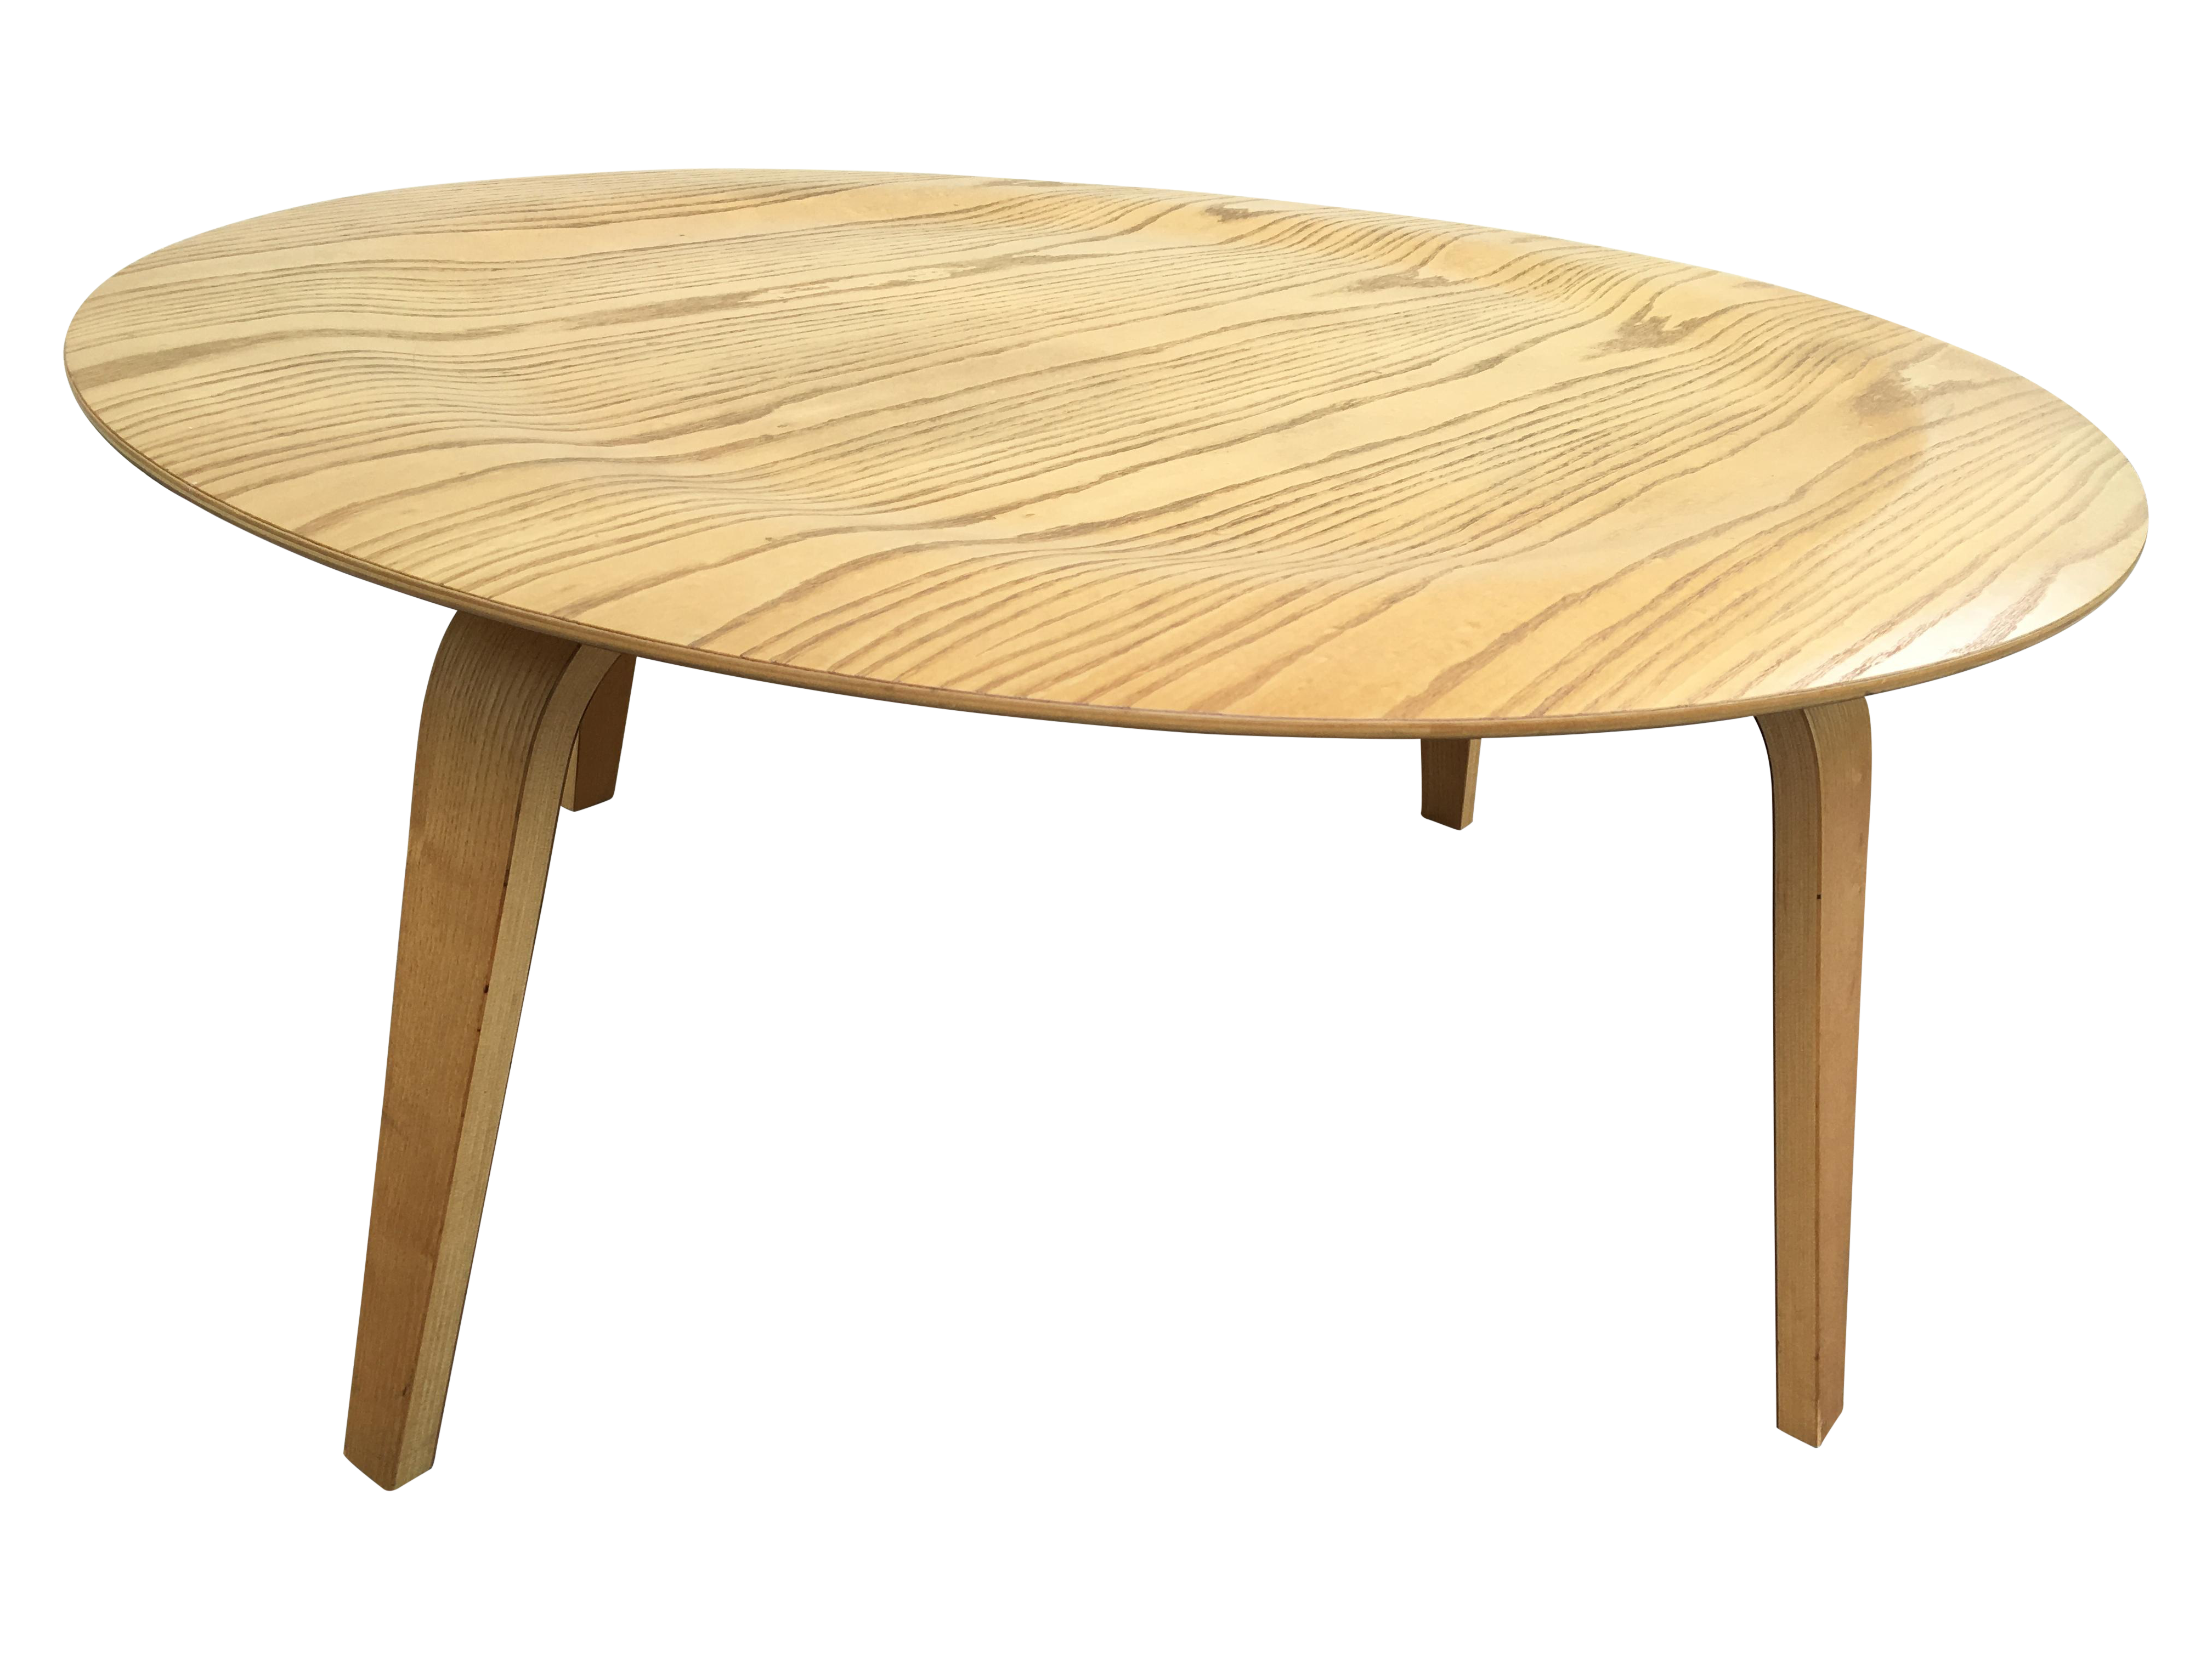 Eames Molded Plywood Coffee Table Chairish